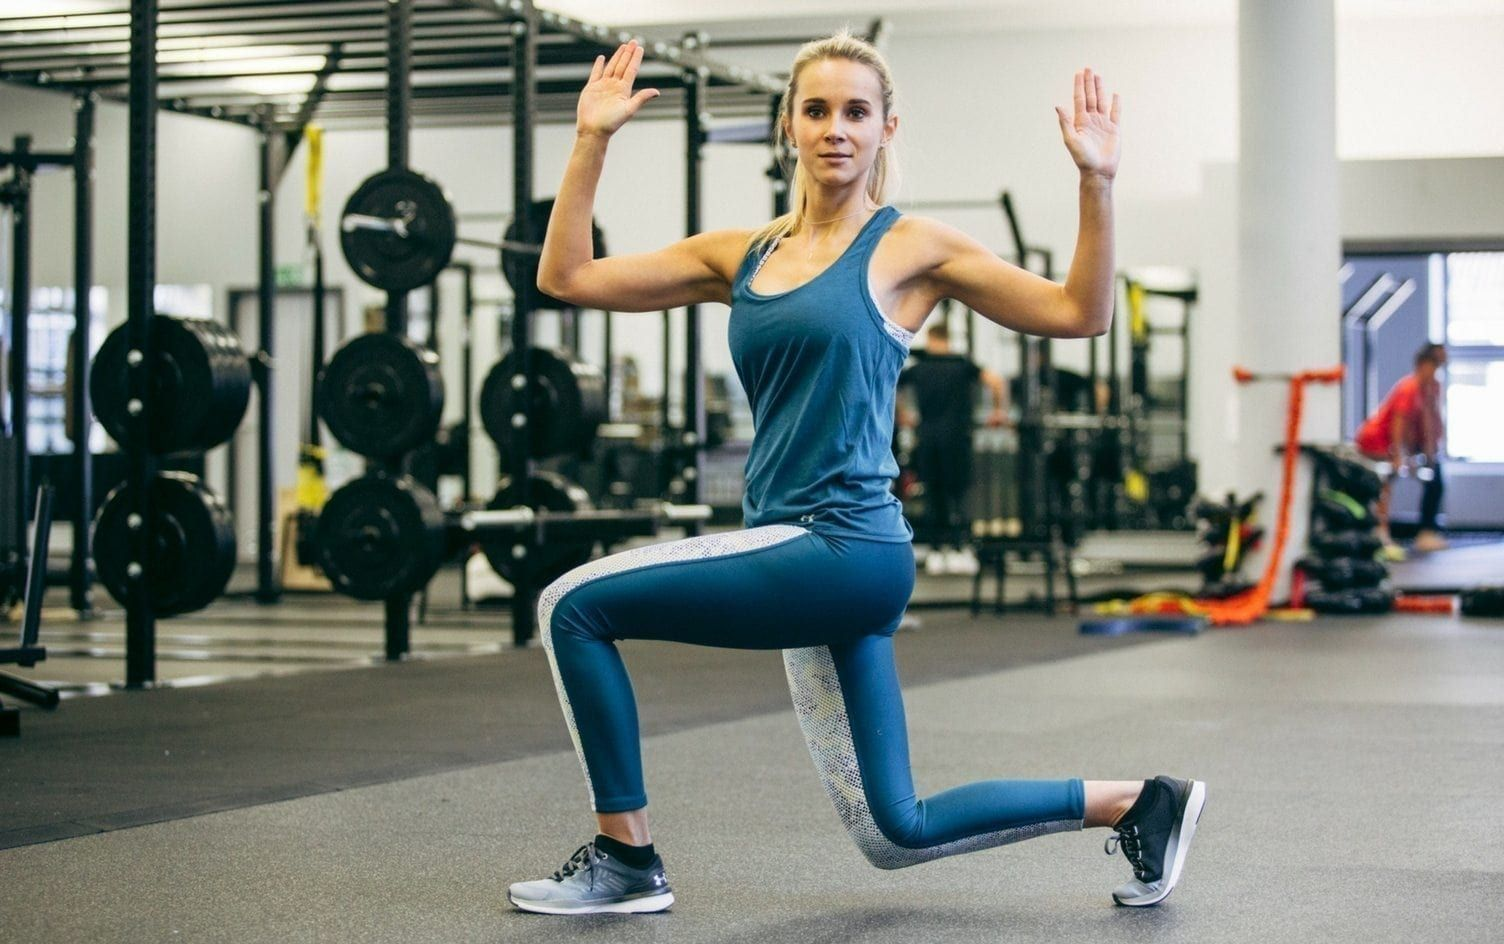 6 signs you need to strengthen your core fitness